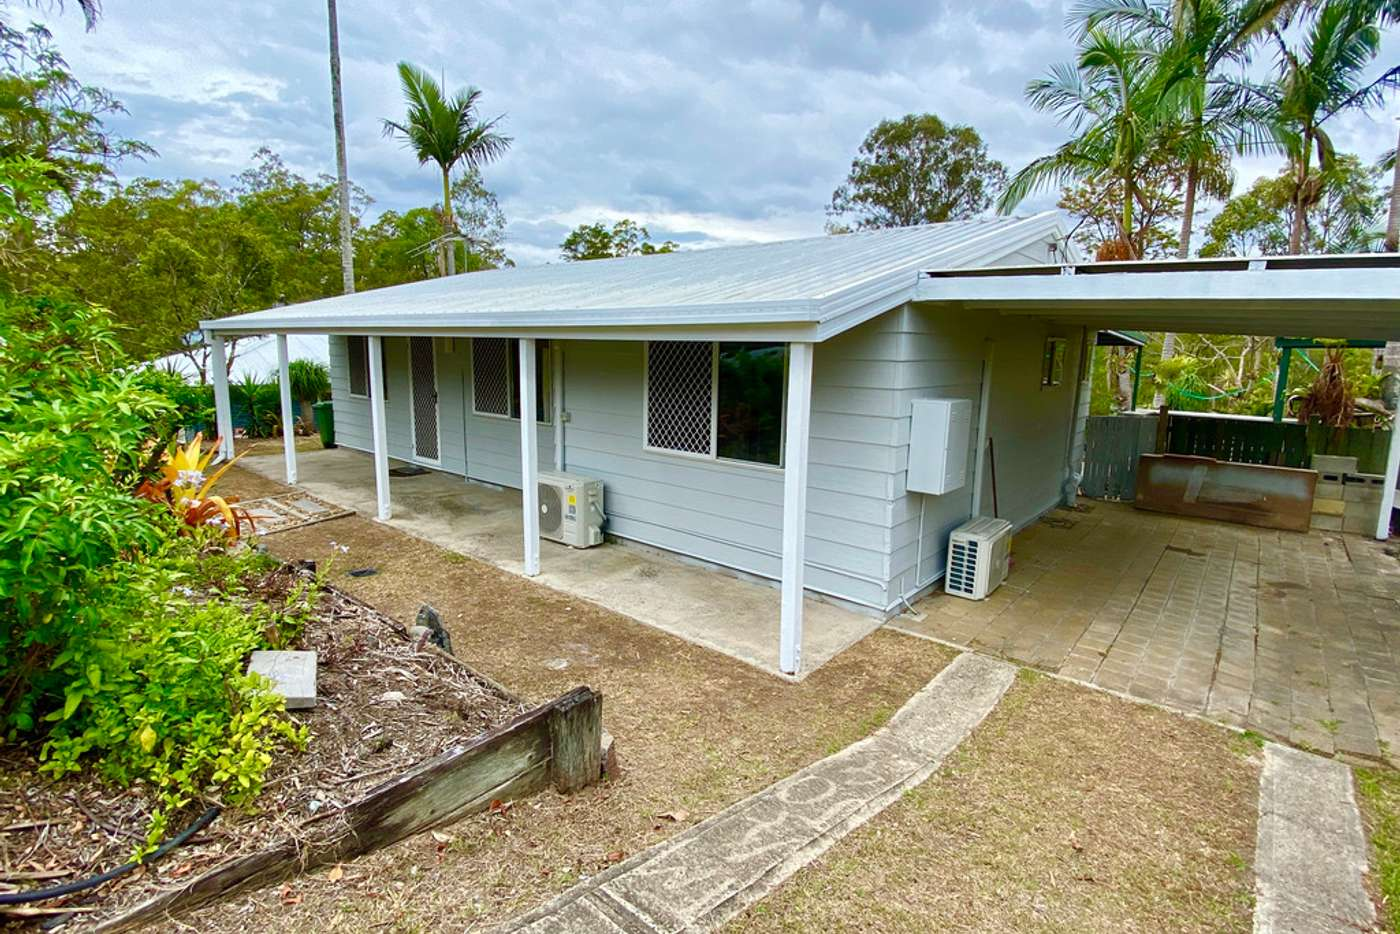 Main view of Homely ruralOther listing, 46 Curran St, D'aguilar QLD 4514